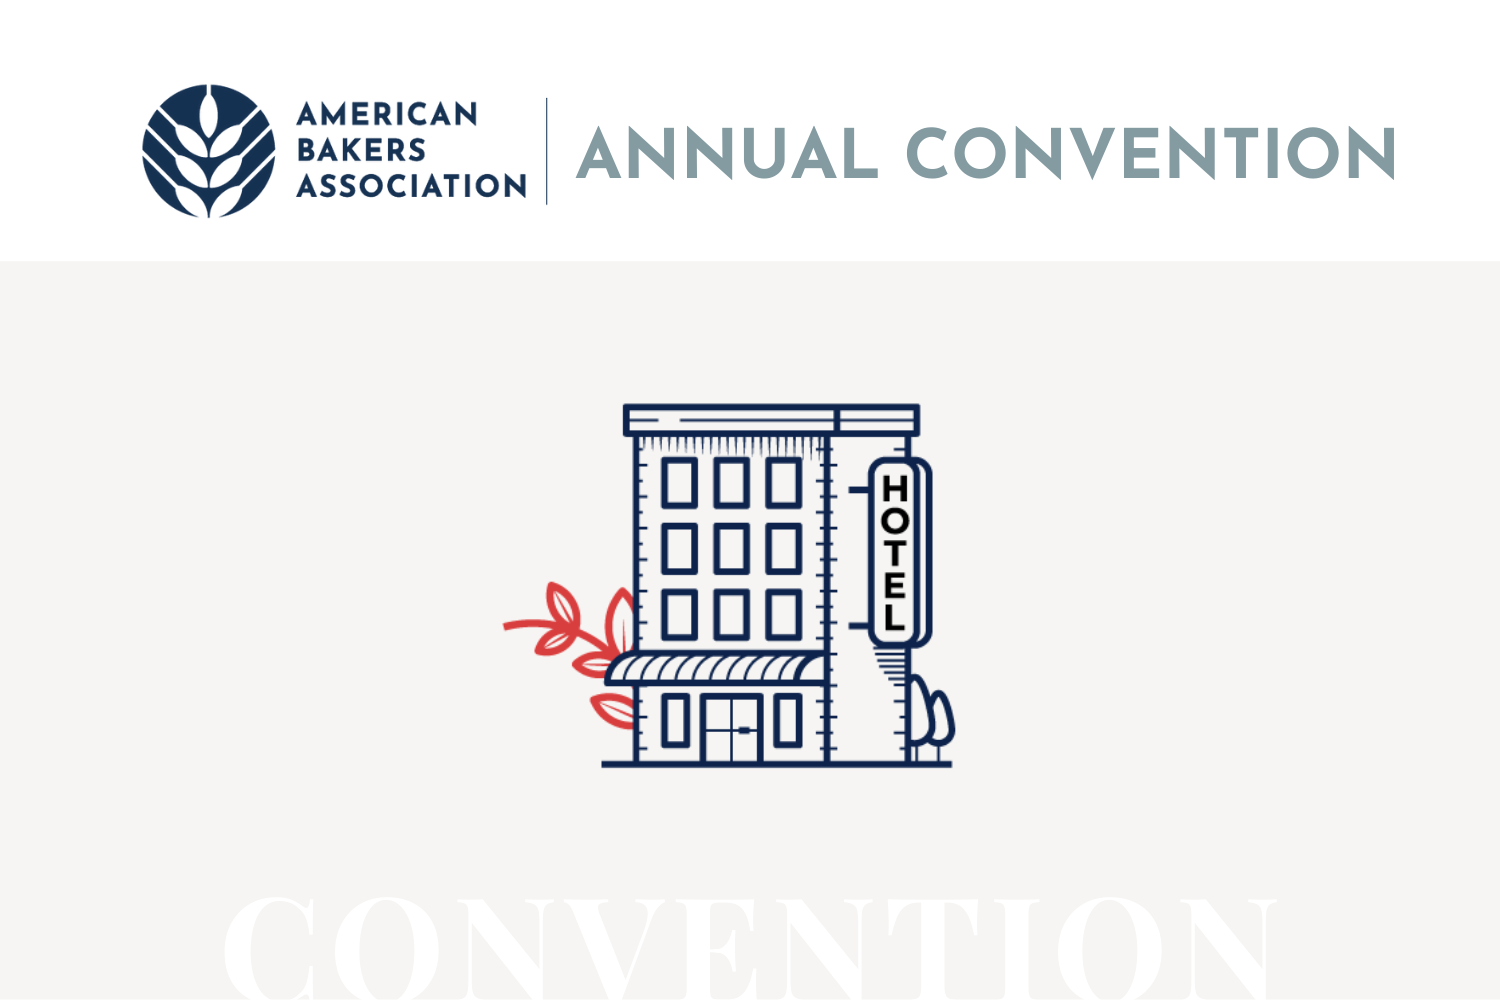 ABA ANNUAL CONVENTION.